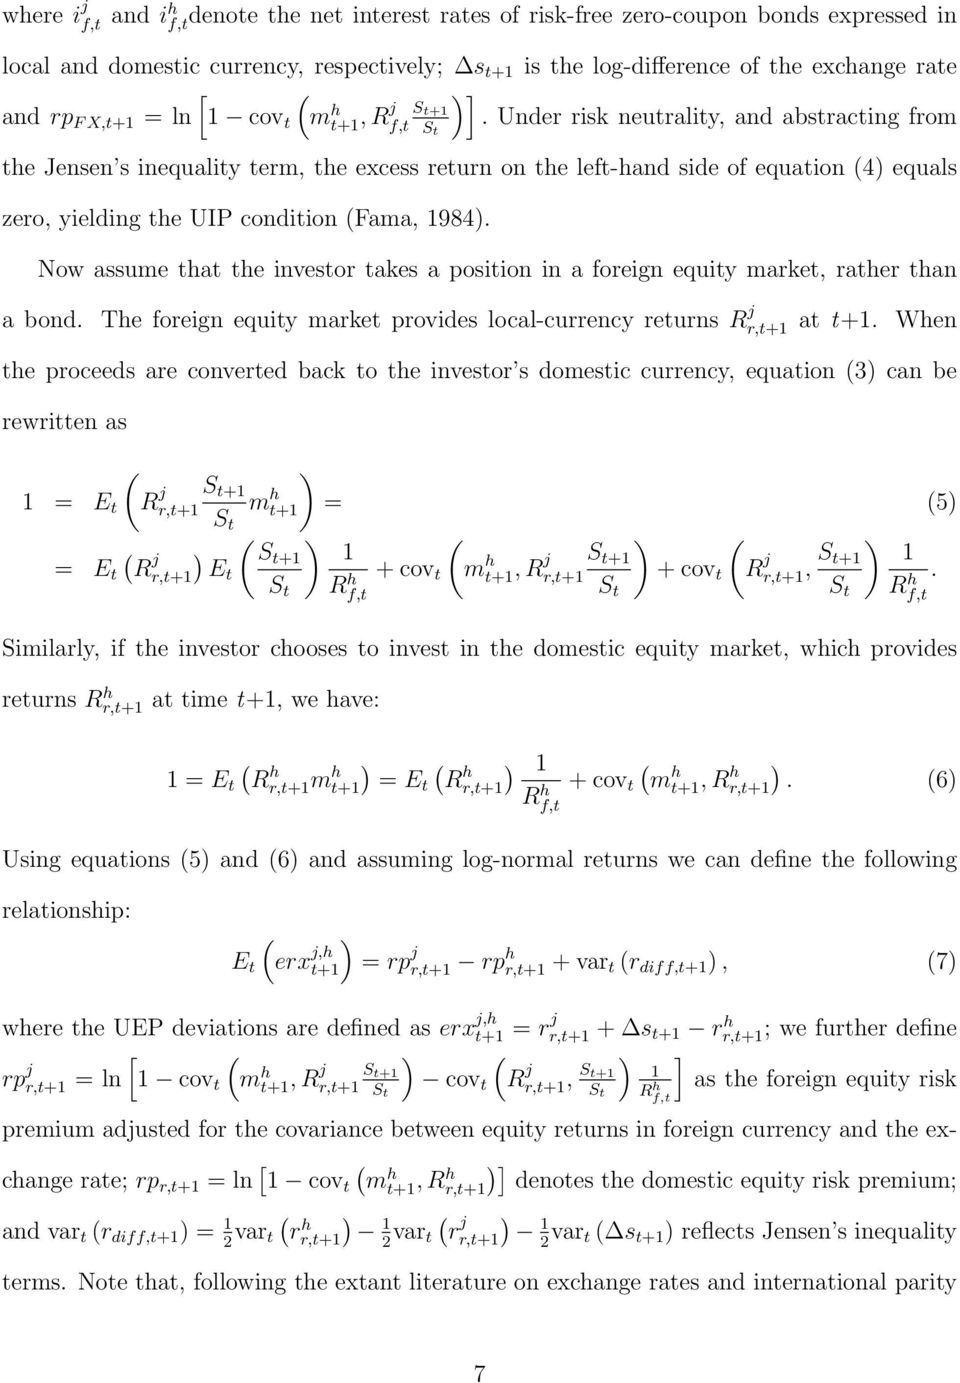 Under risk neutrality, and abstracting from the Jensen s inequality term, the excess return on the left-hand side of equation (4) equals zero, yielding the UIP condition (Fama, 1984).